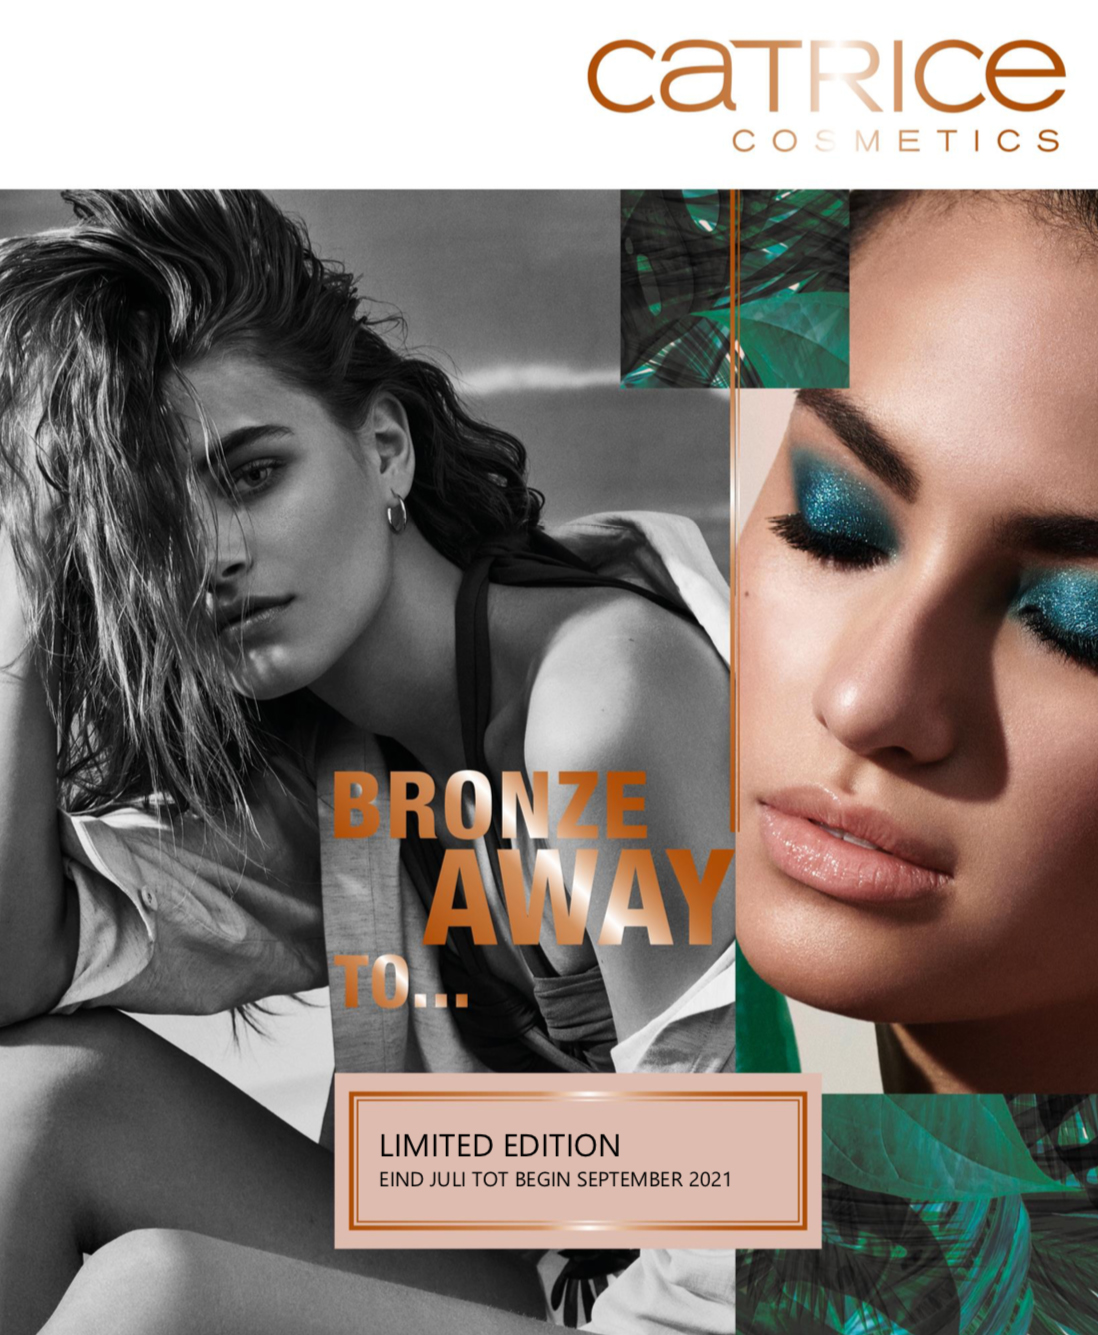 CATRICE Limited Edition Bronze Away To...